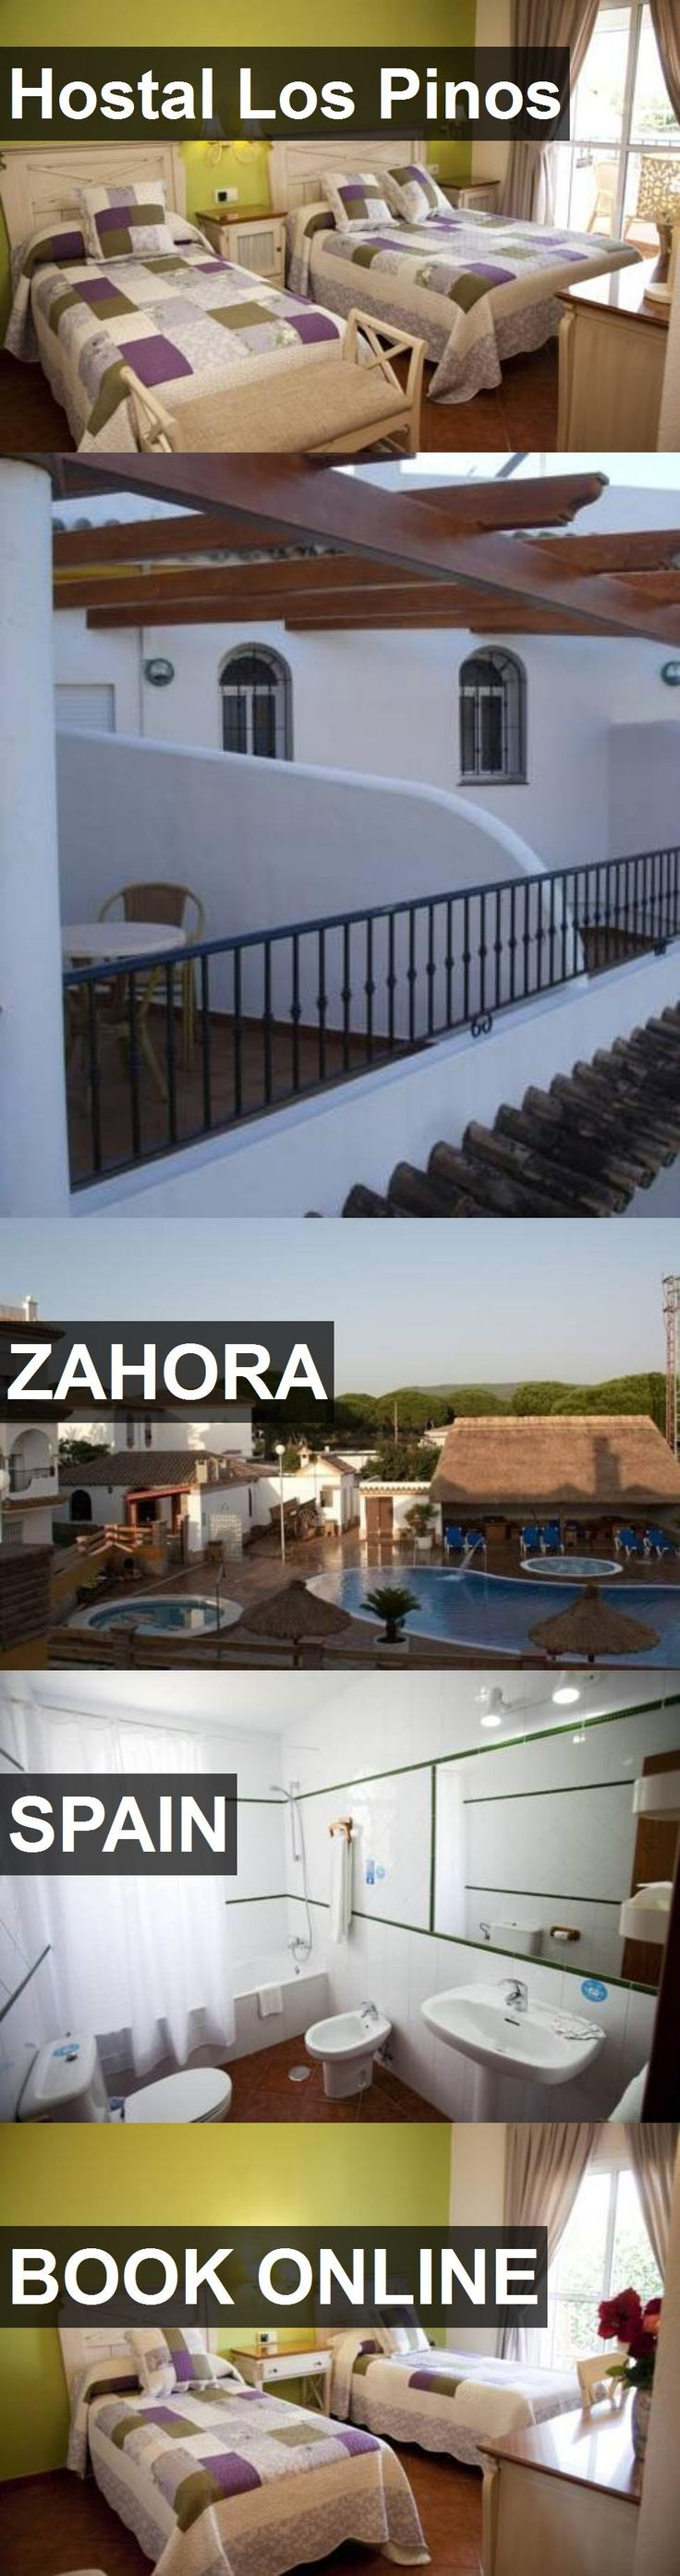 Hotel Hostal Los Pinos in Zahora, Spain. For more information, photos, reviews and best prices please follow the link. #Spain #Zahora #hotel #travel #vacation